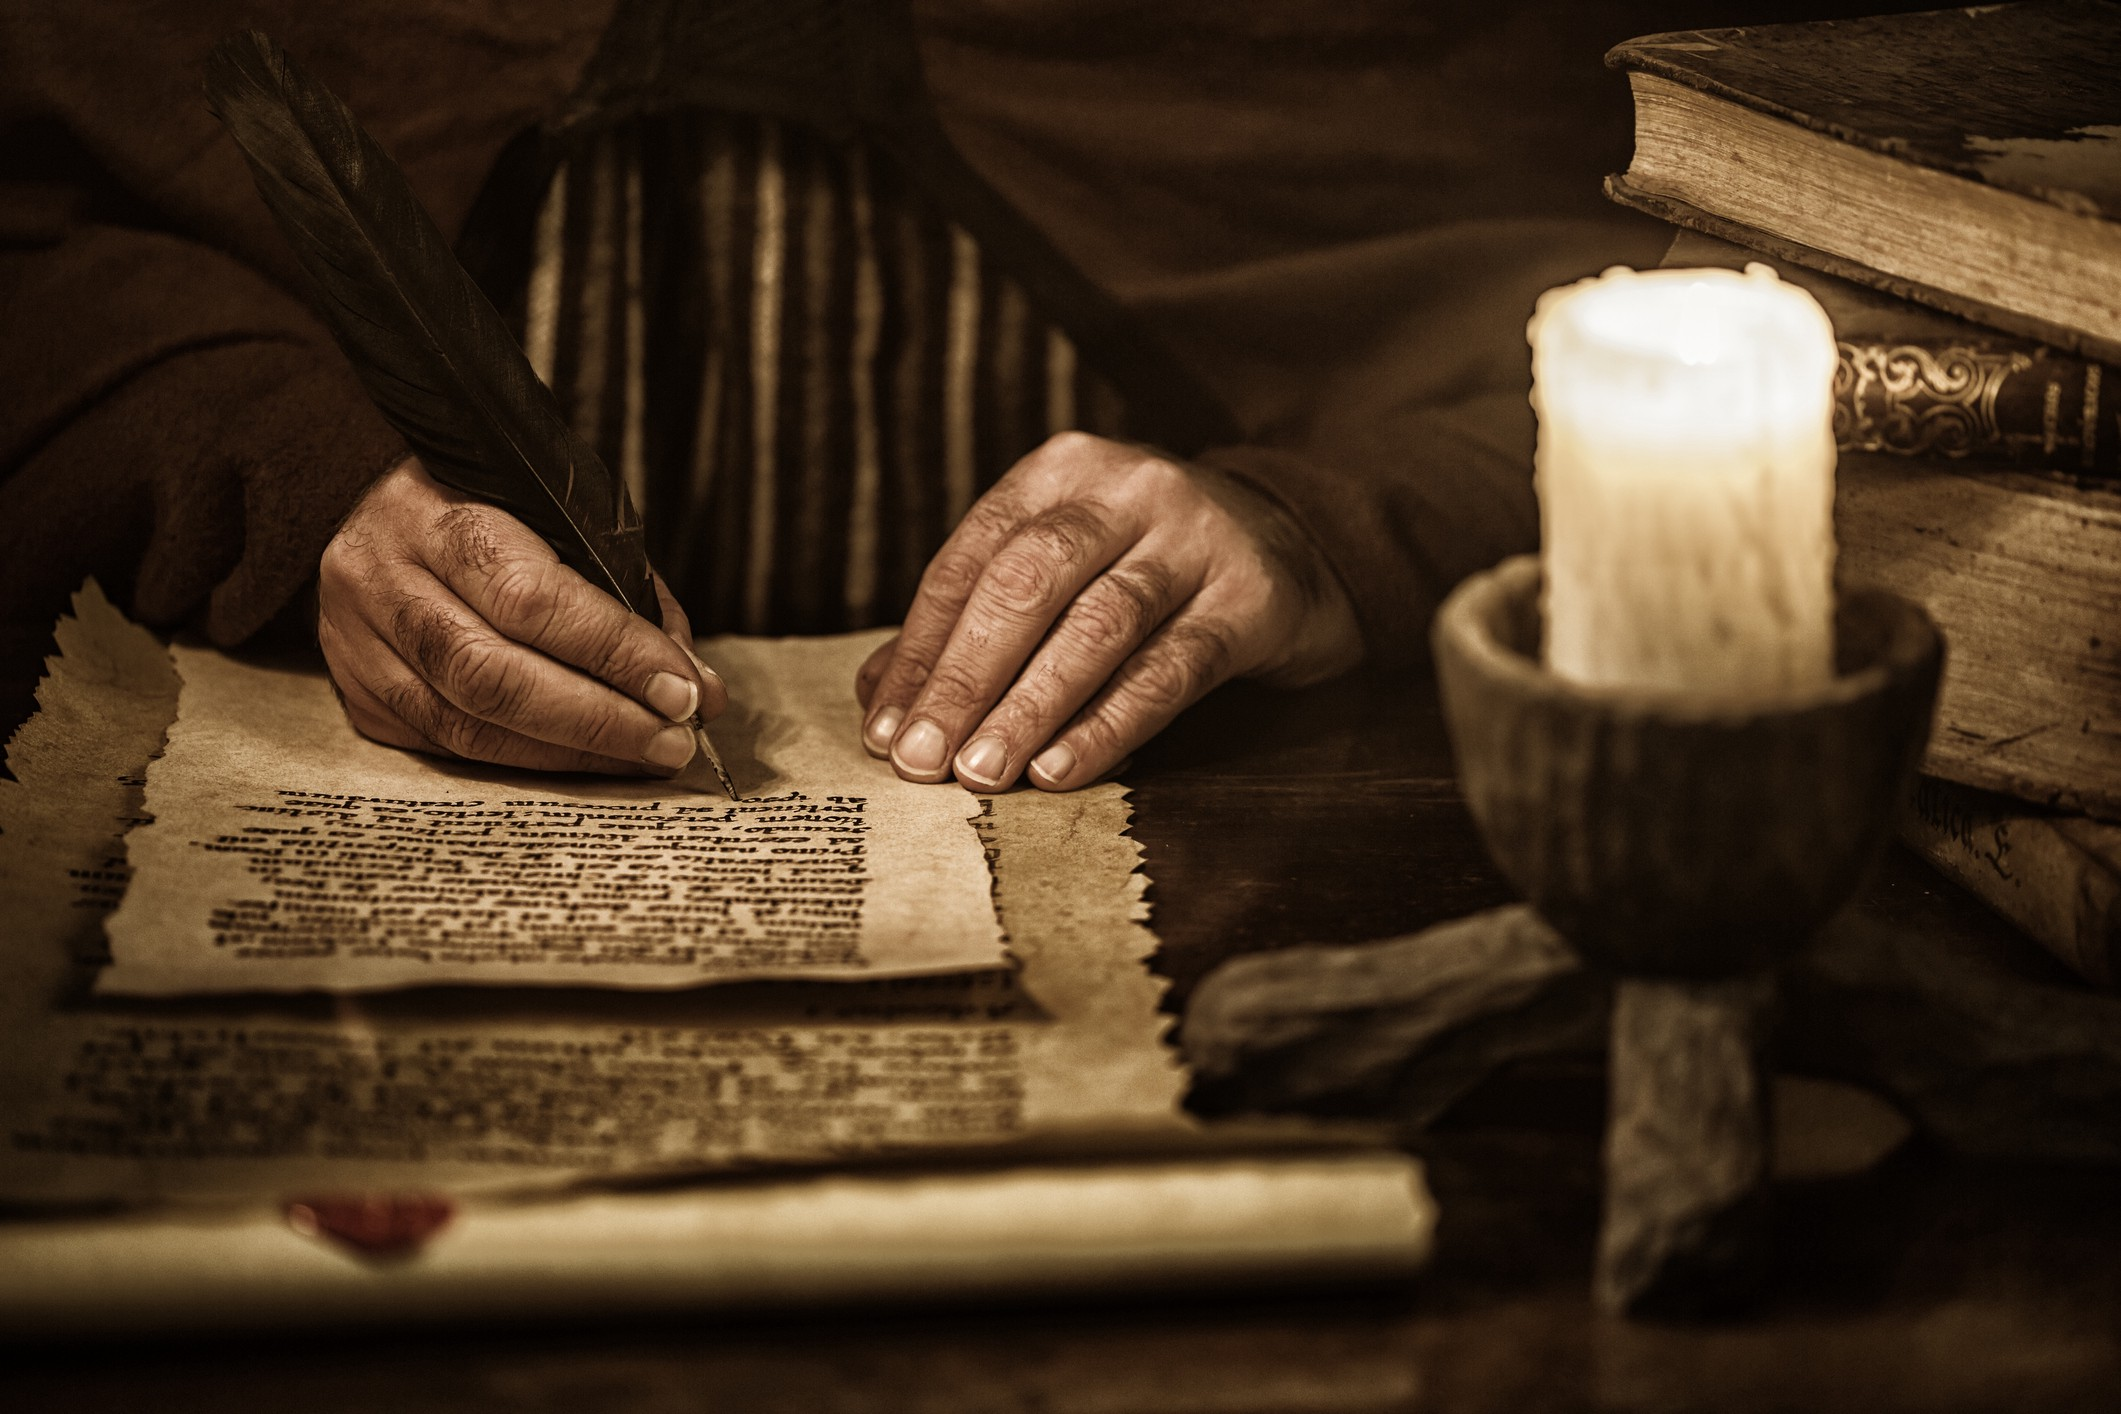 Close up of a man's hands writing on parchment in a dark room with candle and old books piled up nearby.